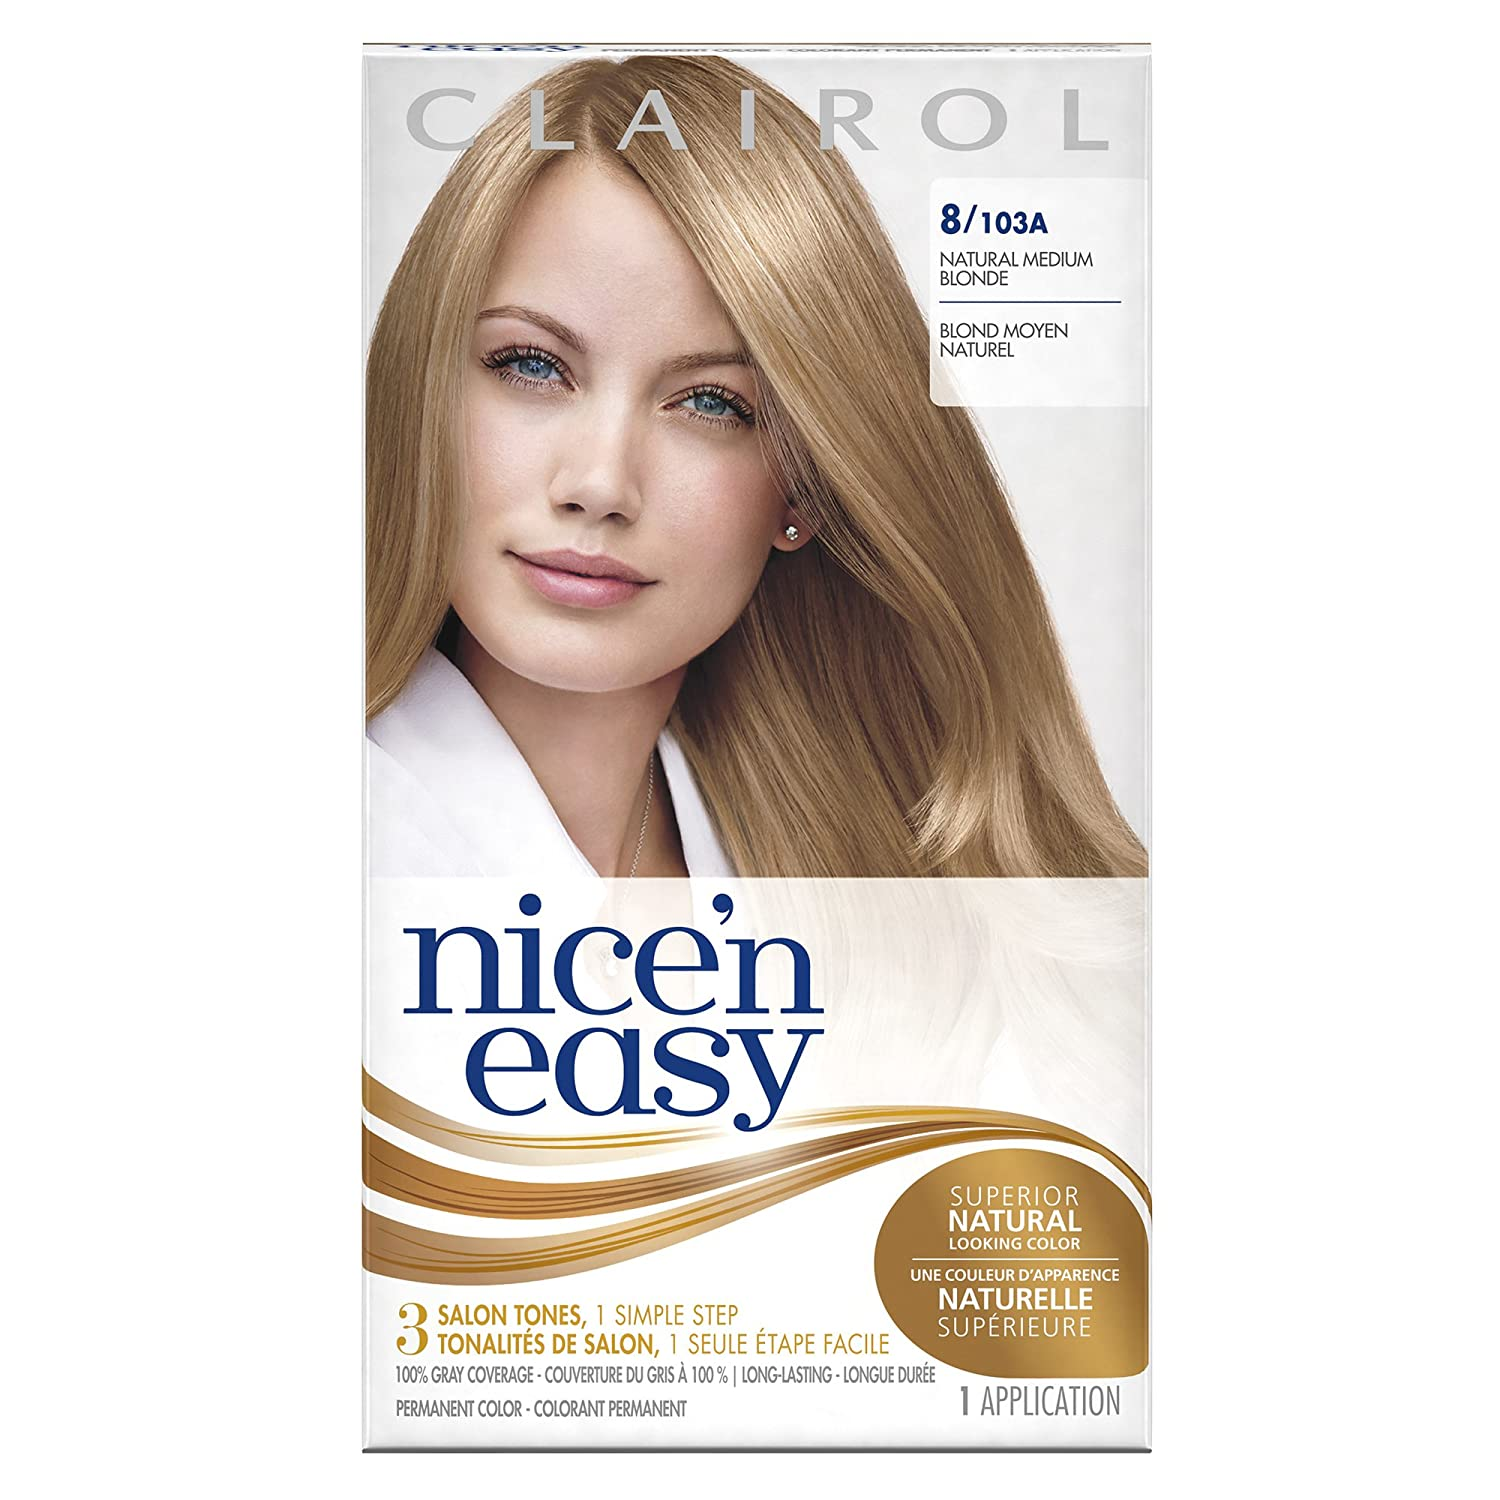 193f5a46d Amazon.com: Clairol Nice 'n Easy, 8/103A Natural Medium Blonde, Permanent  Hair Color, 1 Kit: Prime Pantry